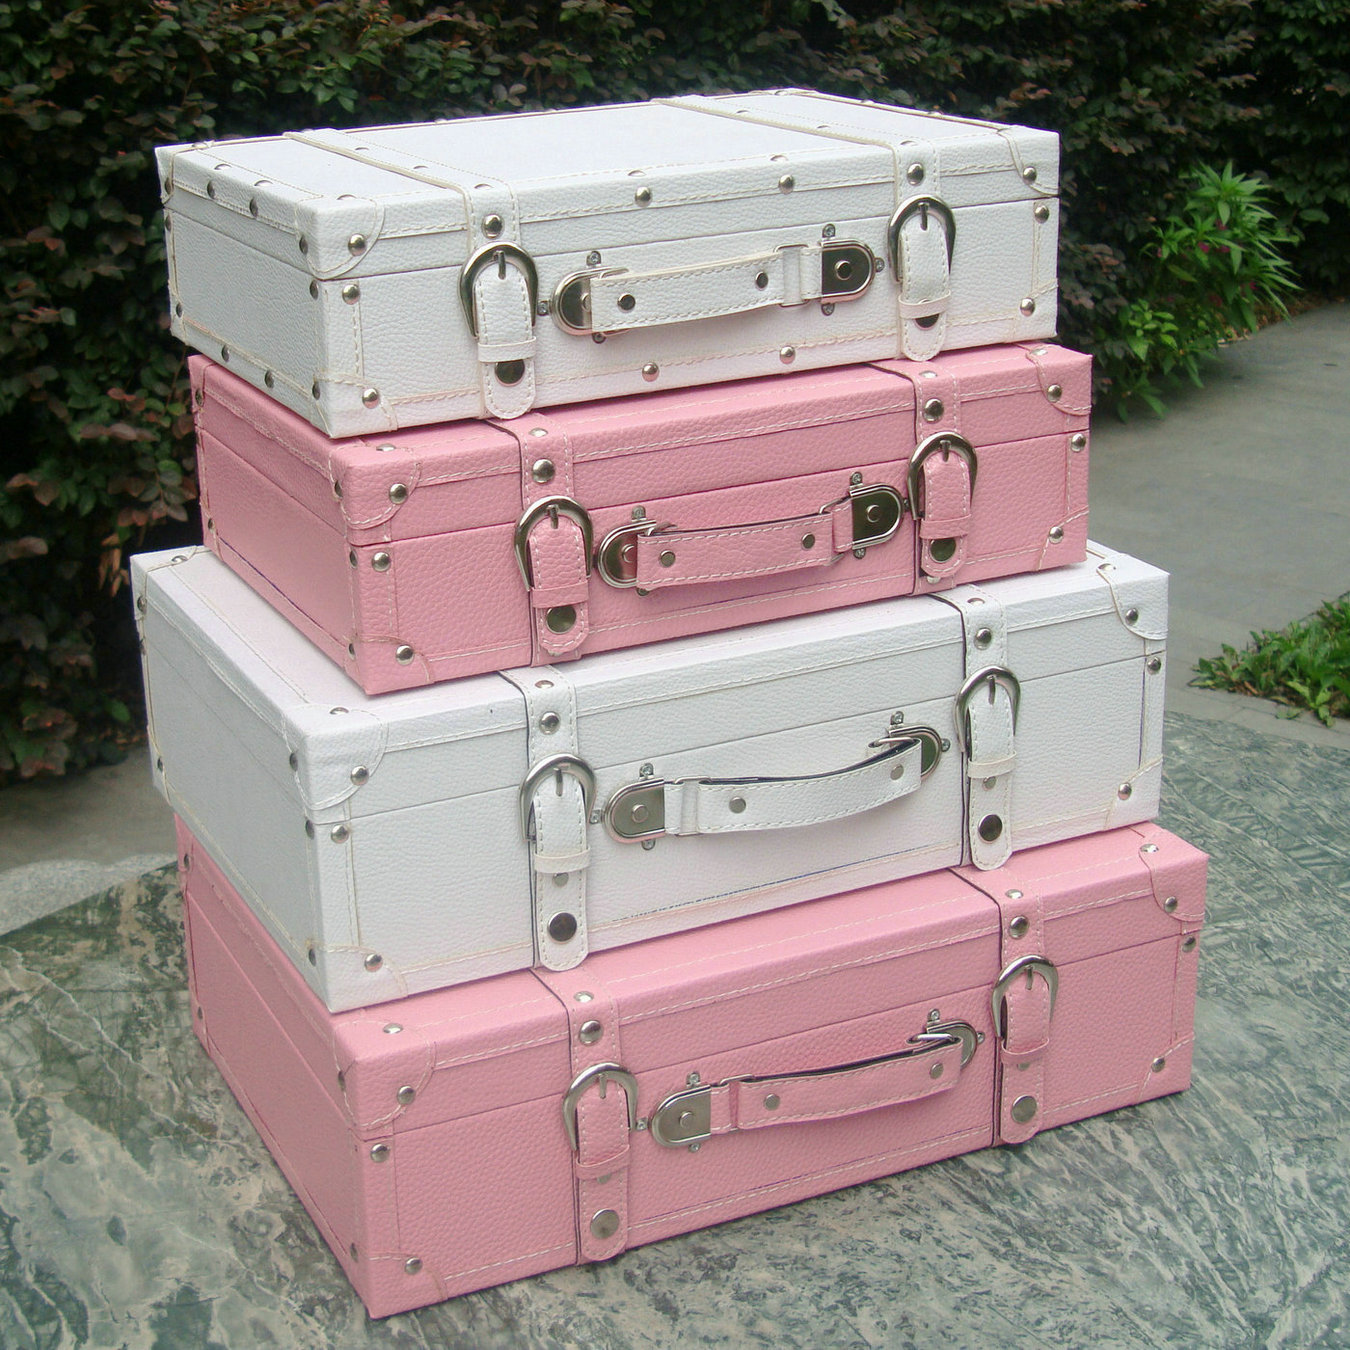 Vintage Decorative Suitcases Fashion Vintage Suitcase Storage Box Suitcase Wooden Box